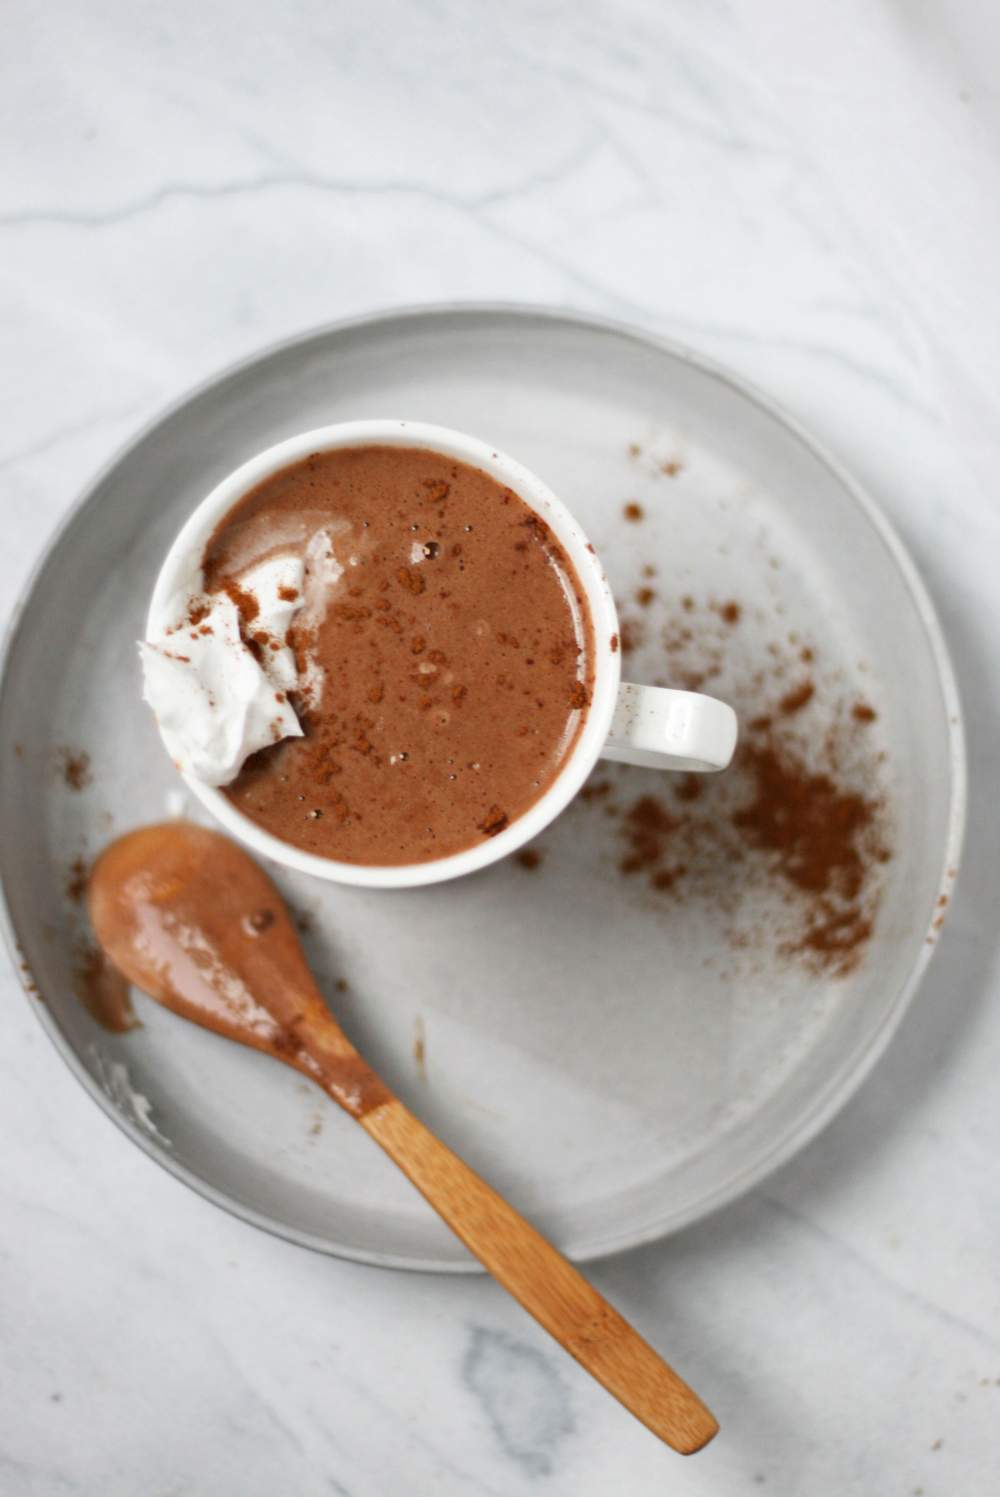 Spicy Mexican Hot Chocolate | VeguKate